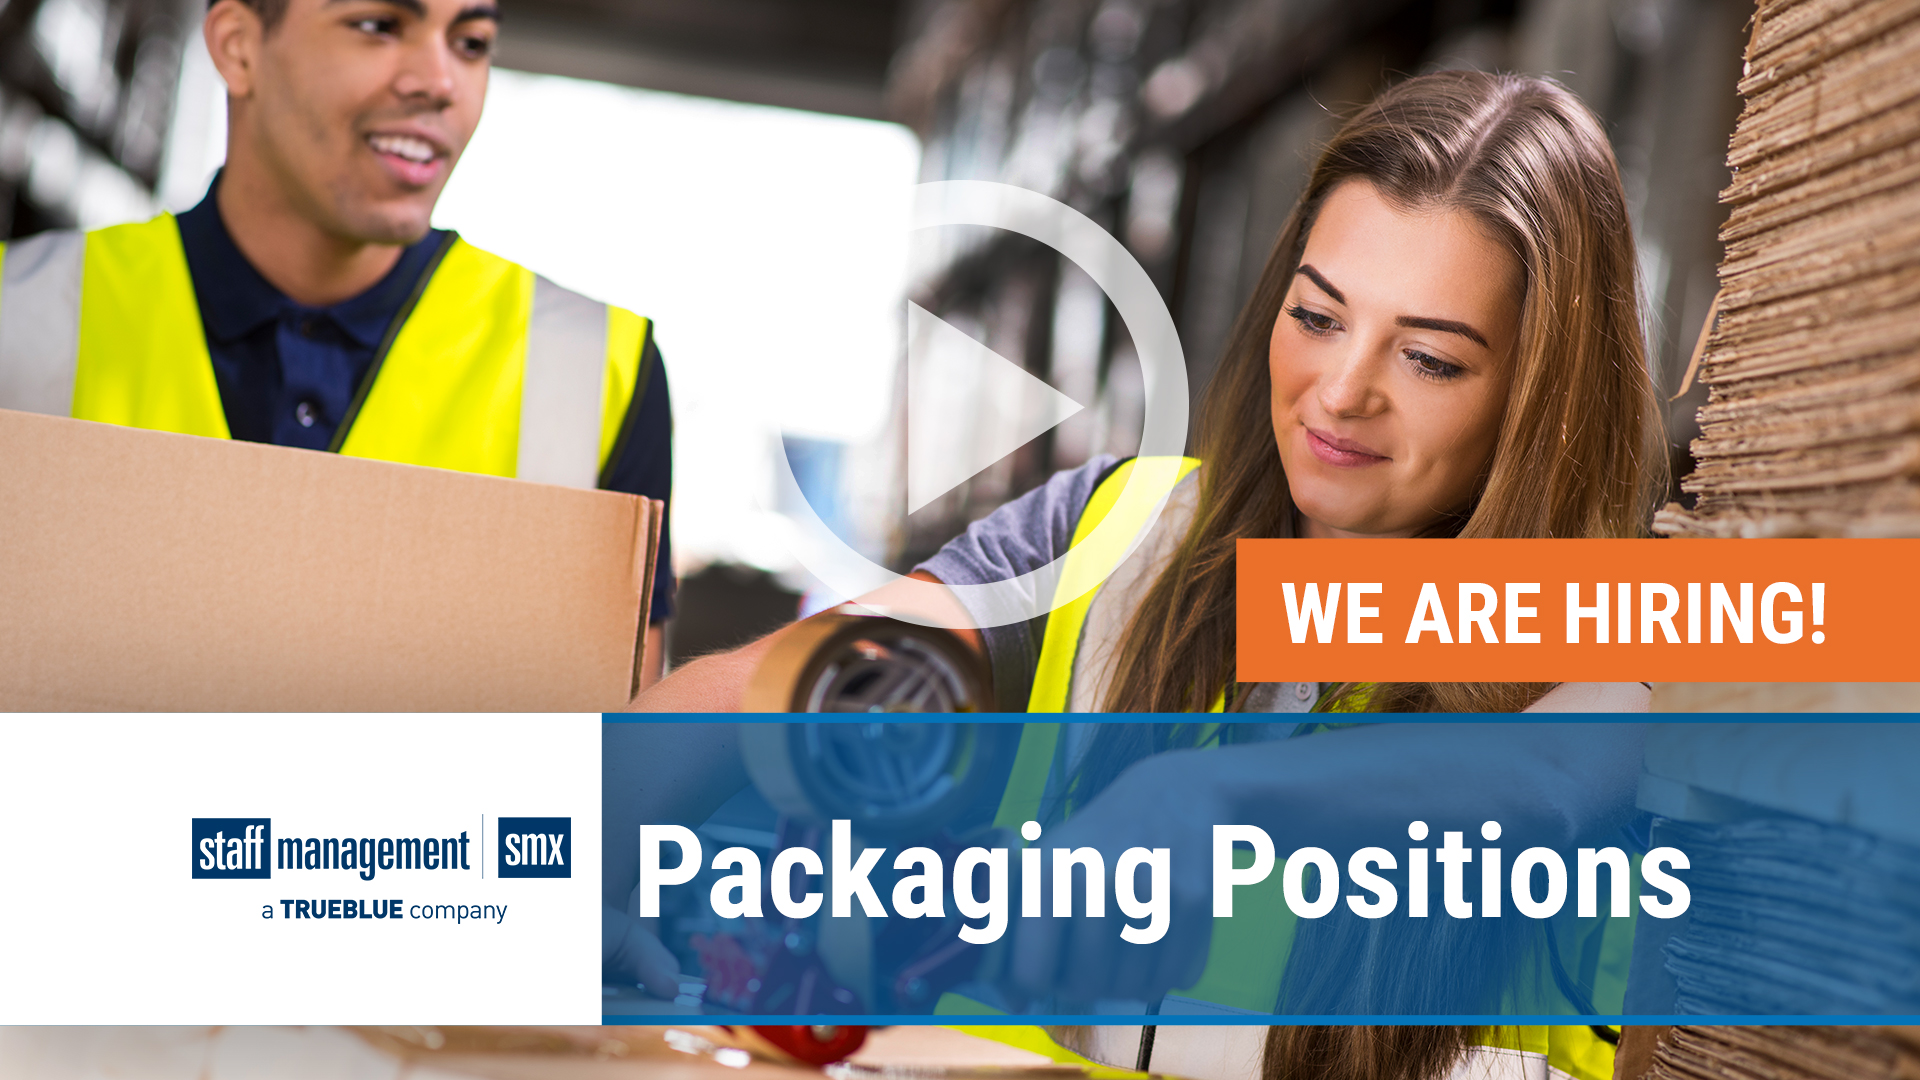 Watch our careers video for available job opening Packaging Positions in Asheboro, NC